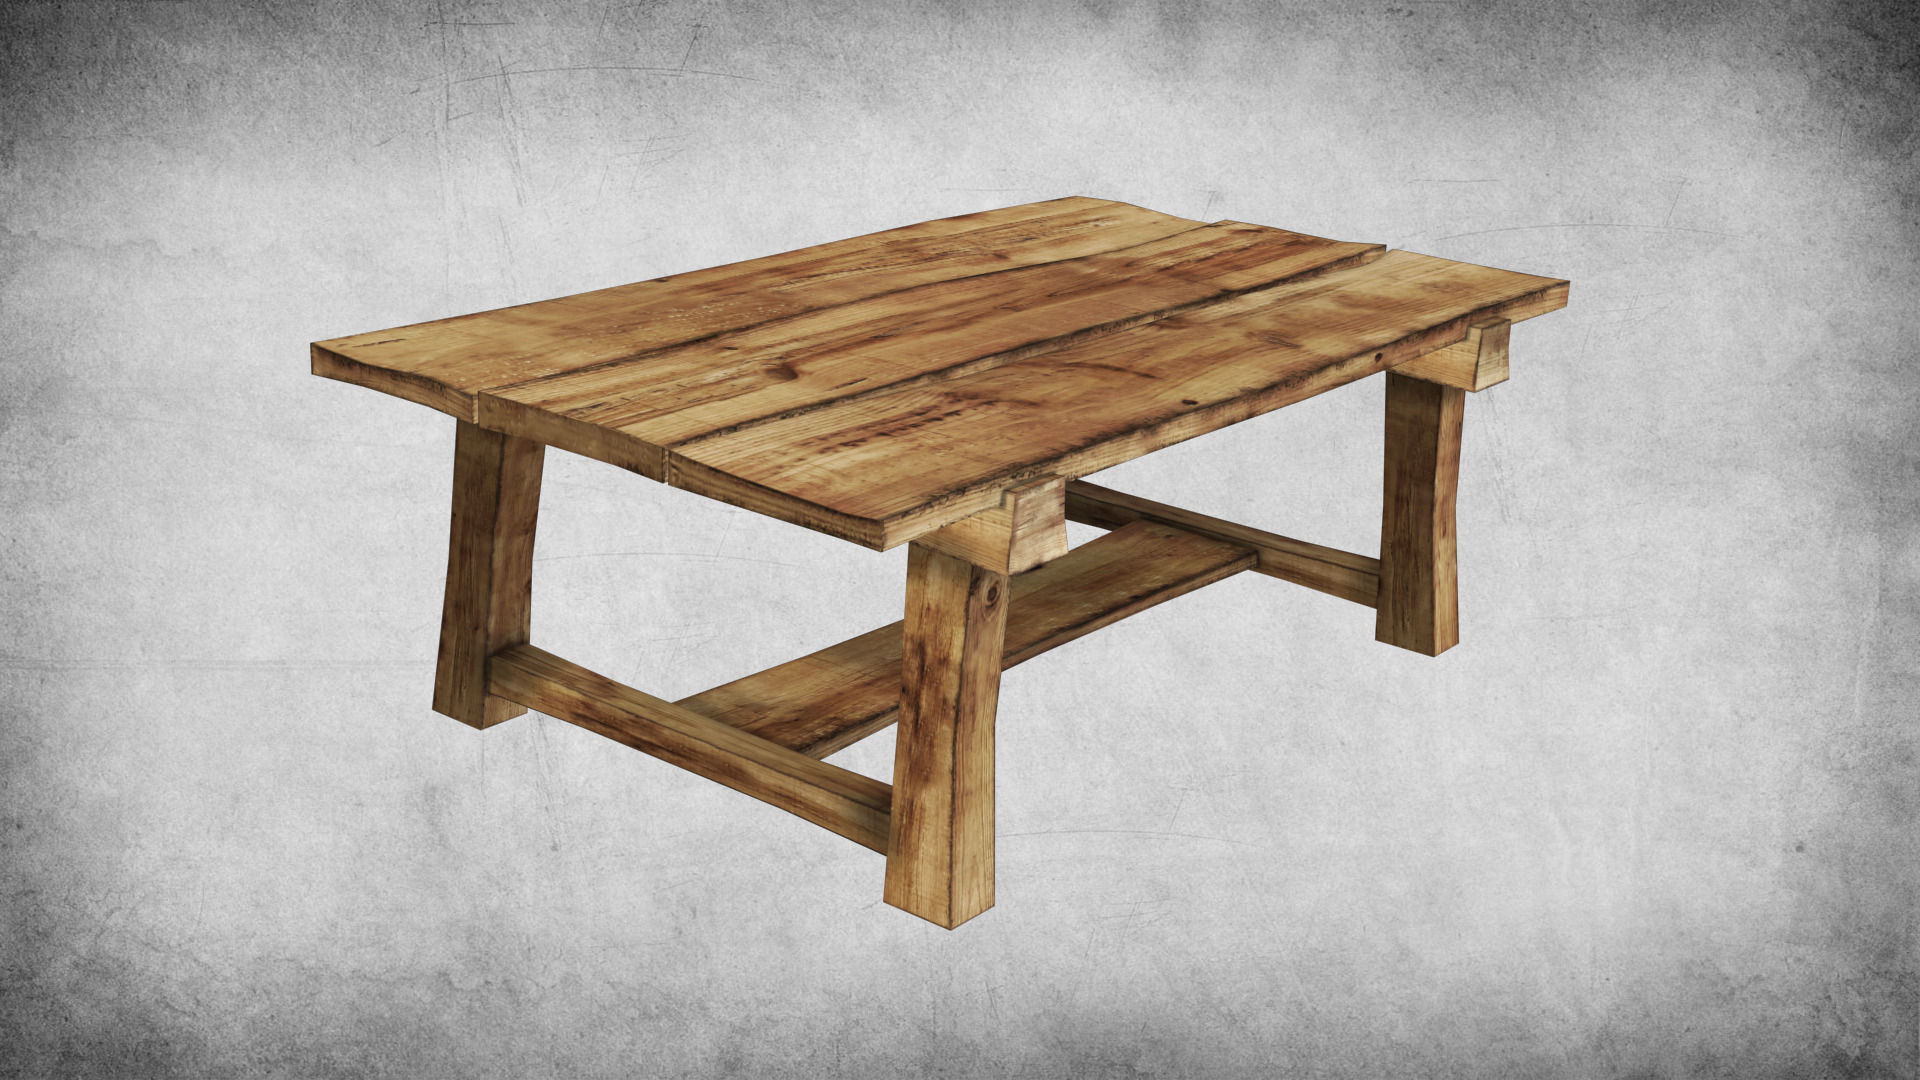 Rustic Wood Table 01 3d Model Low Poly Max Obj 3ds Fbx Dae Dwg 1 ...